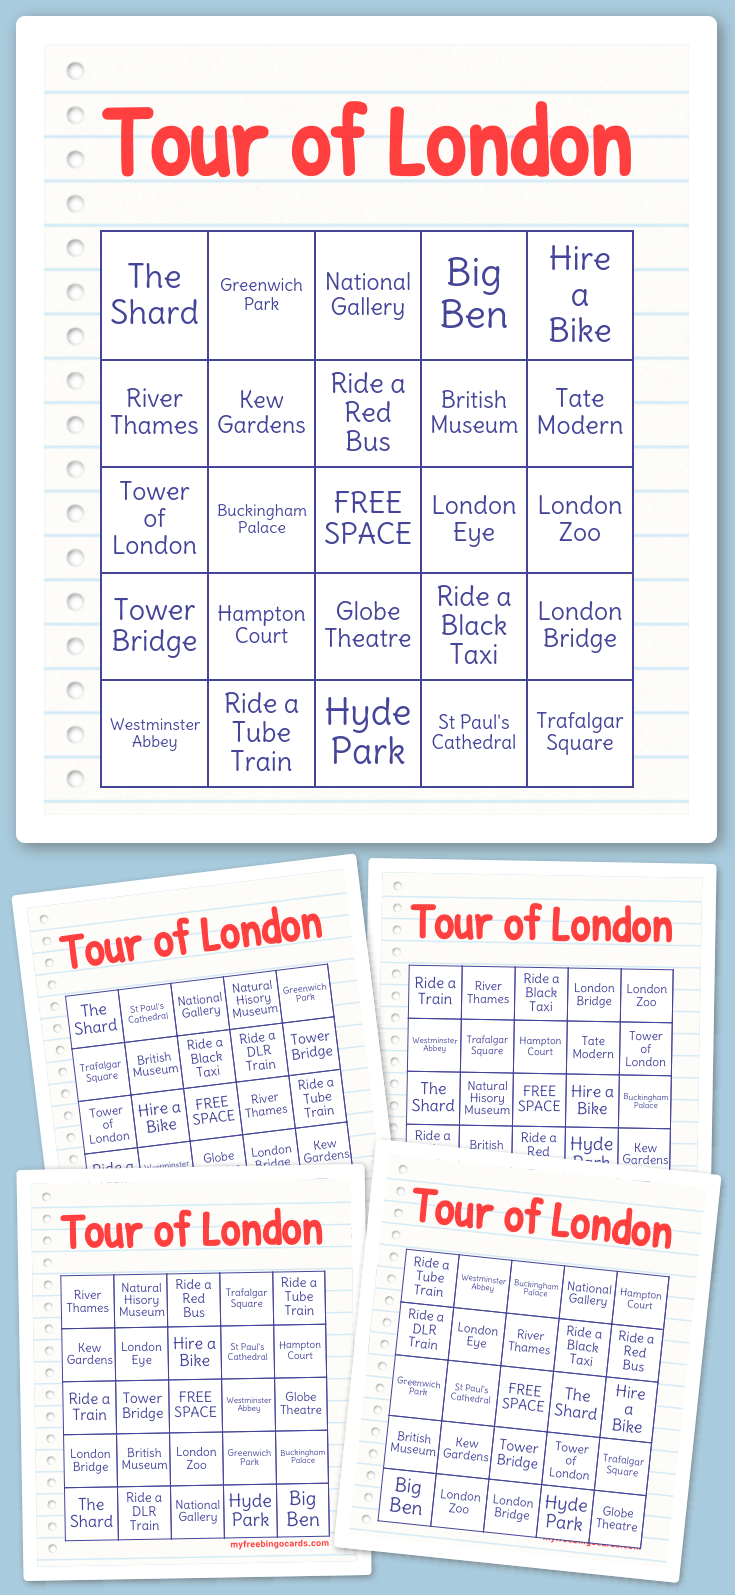 Tour of London Bingo